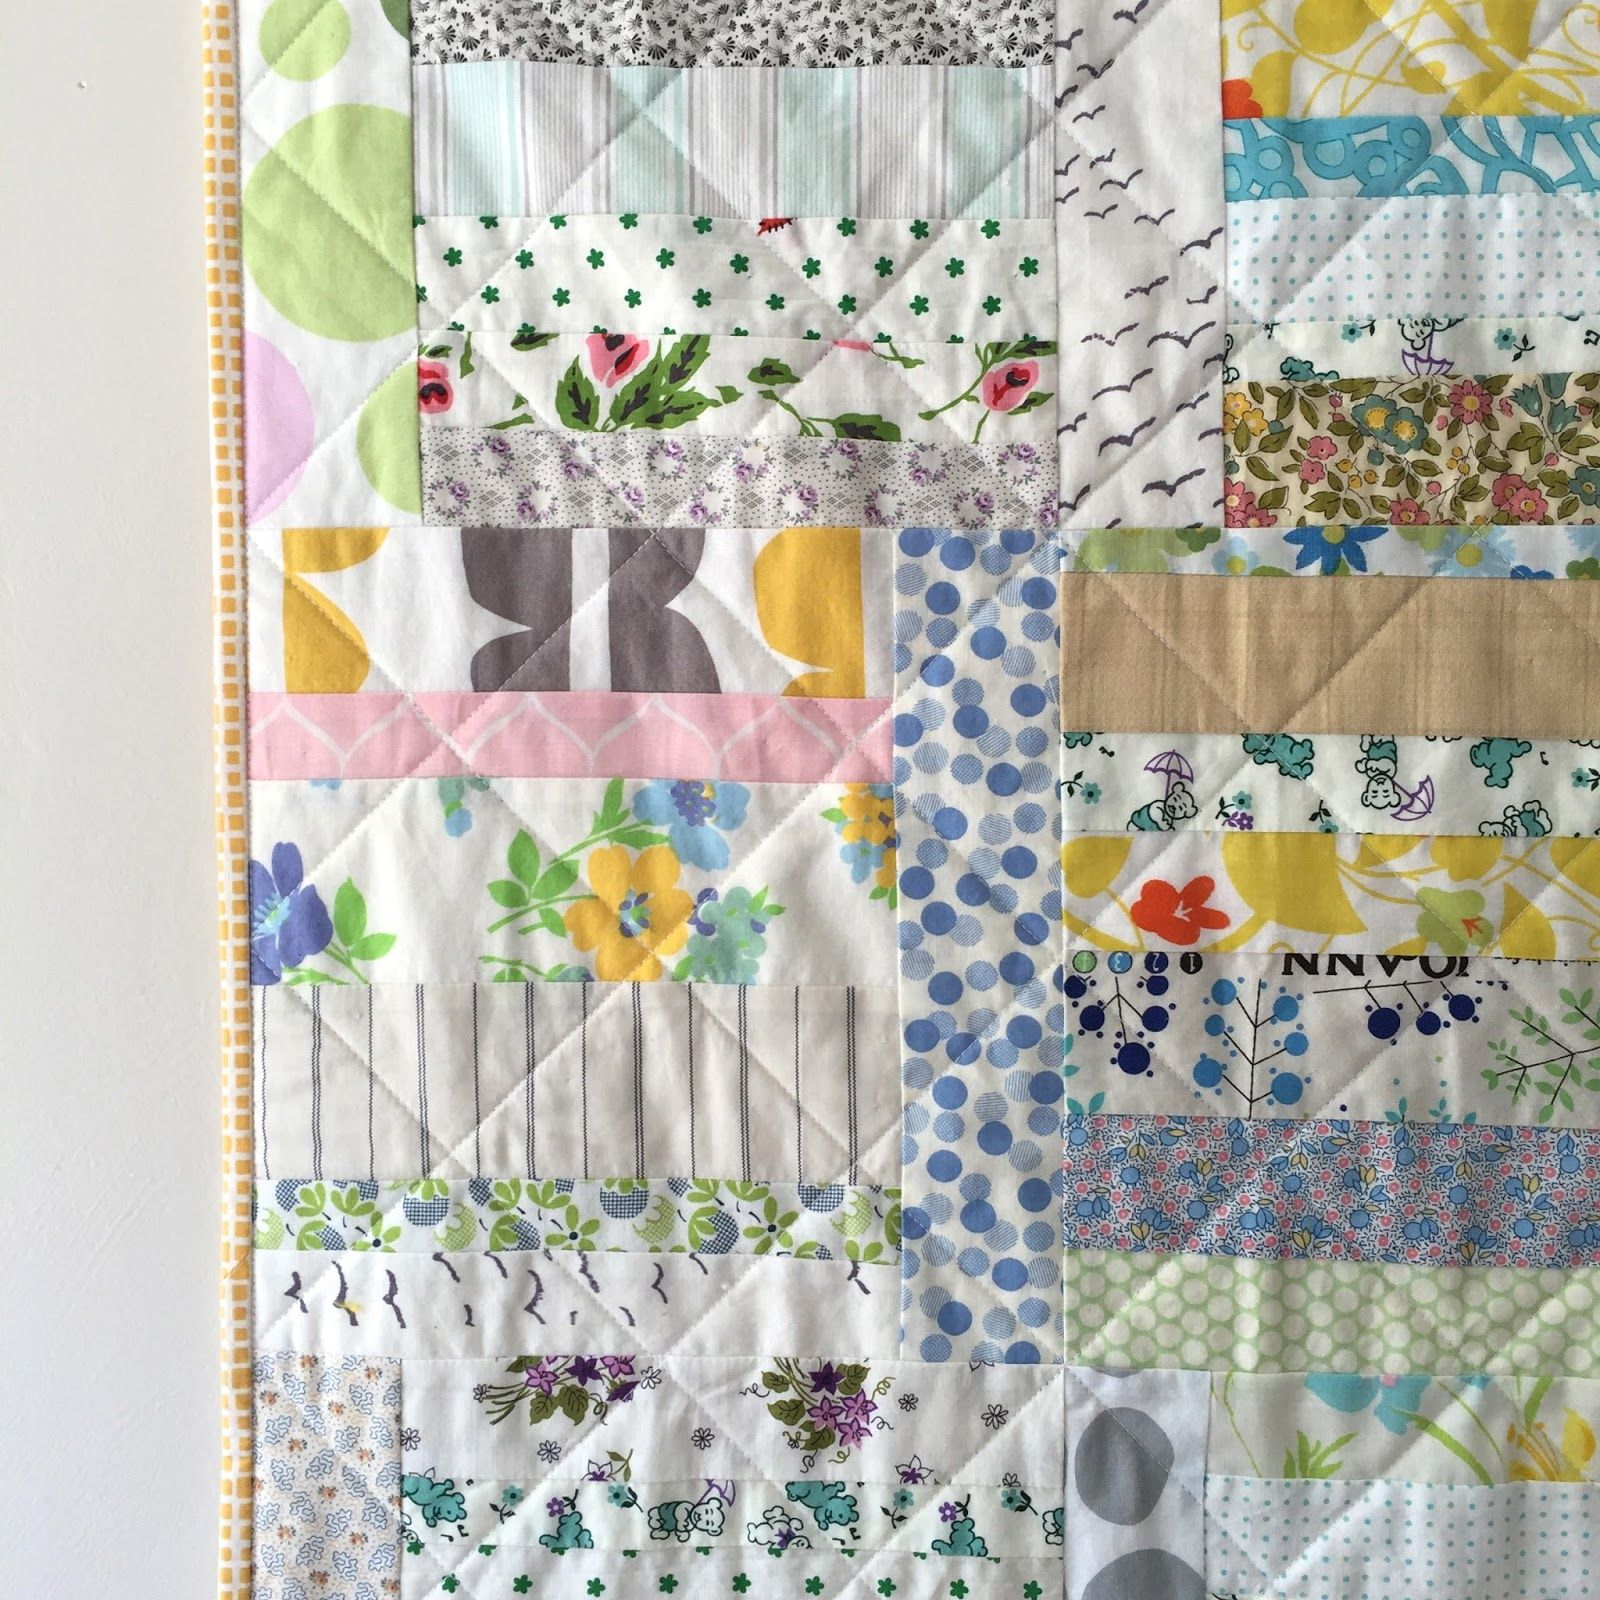 salty oat: quilt studio and fabric shop: sunday morning low-volume throw quilt